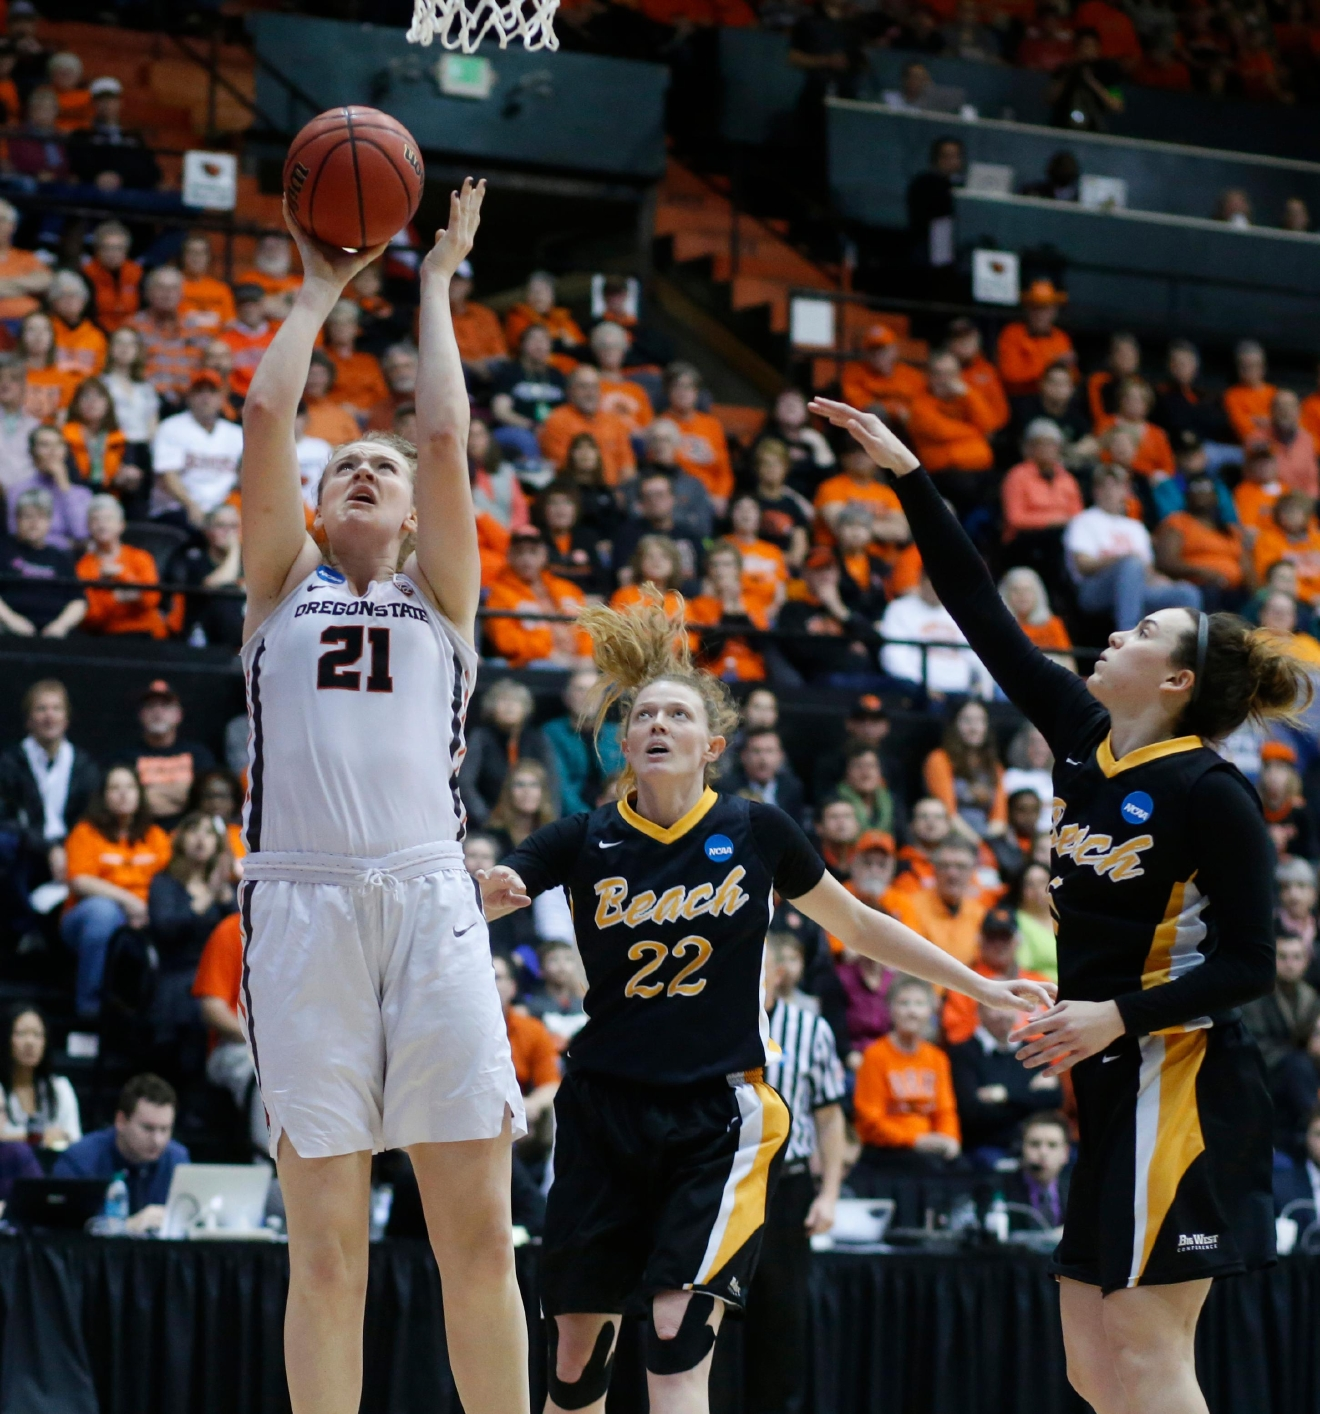 Oregon State's Marie Gulich (21) gets behind Long Beach State's Madison Montgomery (22) and Gigi Hascheff (5) for two points during the first half of a first-round game in the women's NCAA college basketball tournament Friday, March 17, 2017, in Corvallis, Ore. (AP Photo/ Timothy J. Gonzalez)